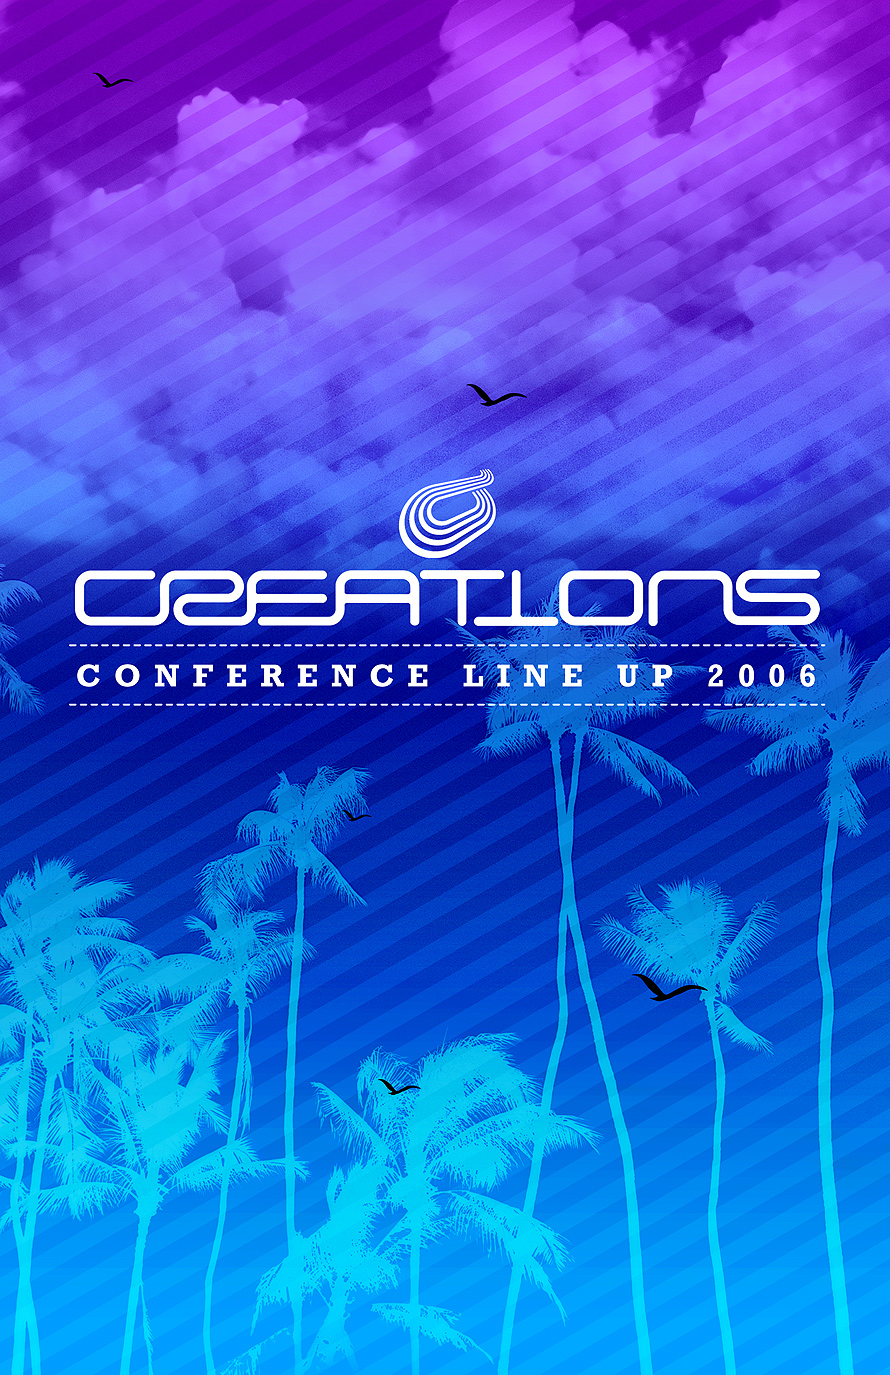 Creations Conference Line- Up